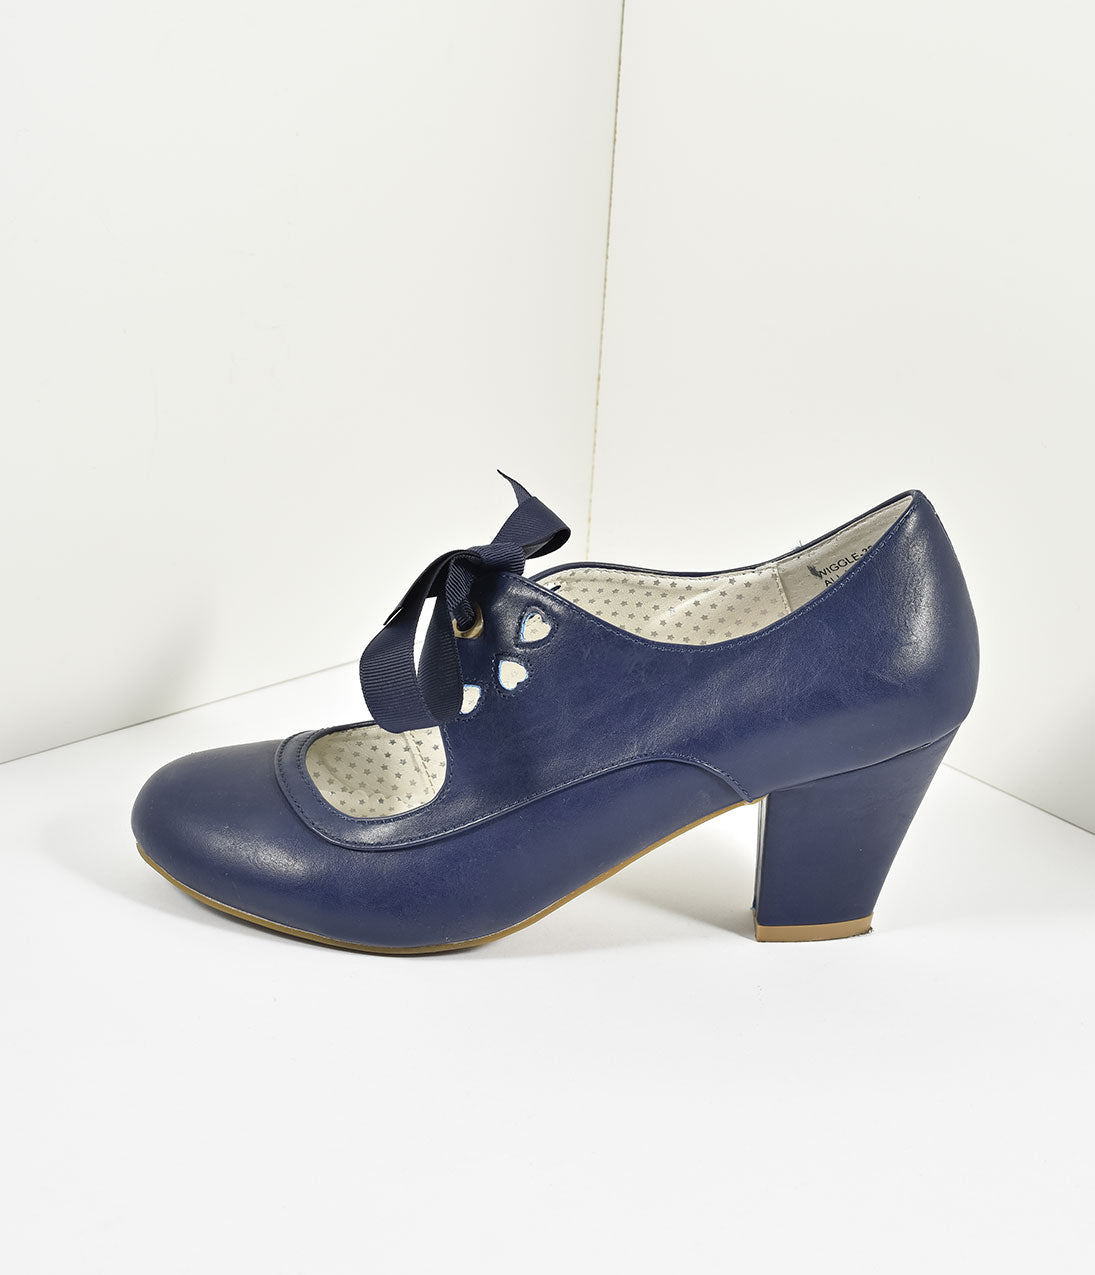 1930s Style Shoes – Art Deco Shoes Vintage Style Navy Blue Leatherette Mary Jane Bow Wiggle Heels $58.00 AT vintagedancer.com